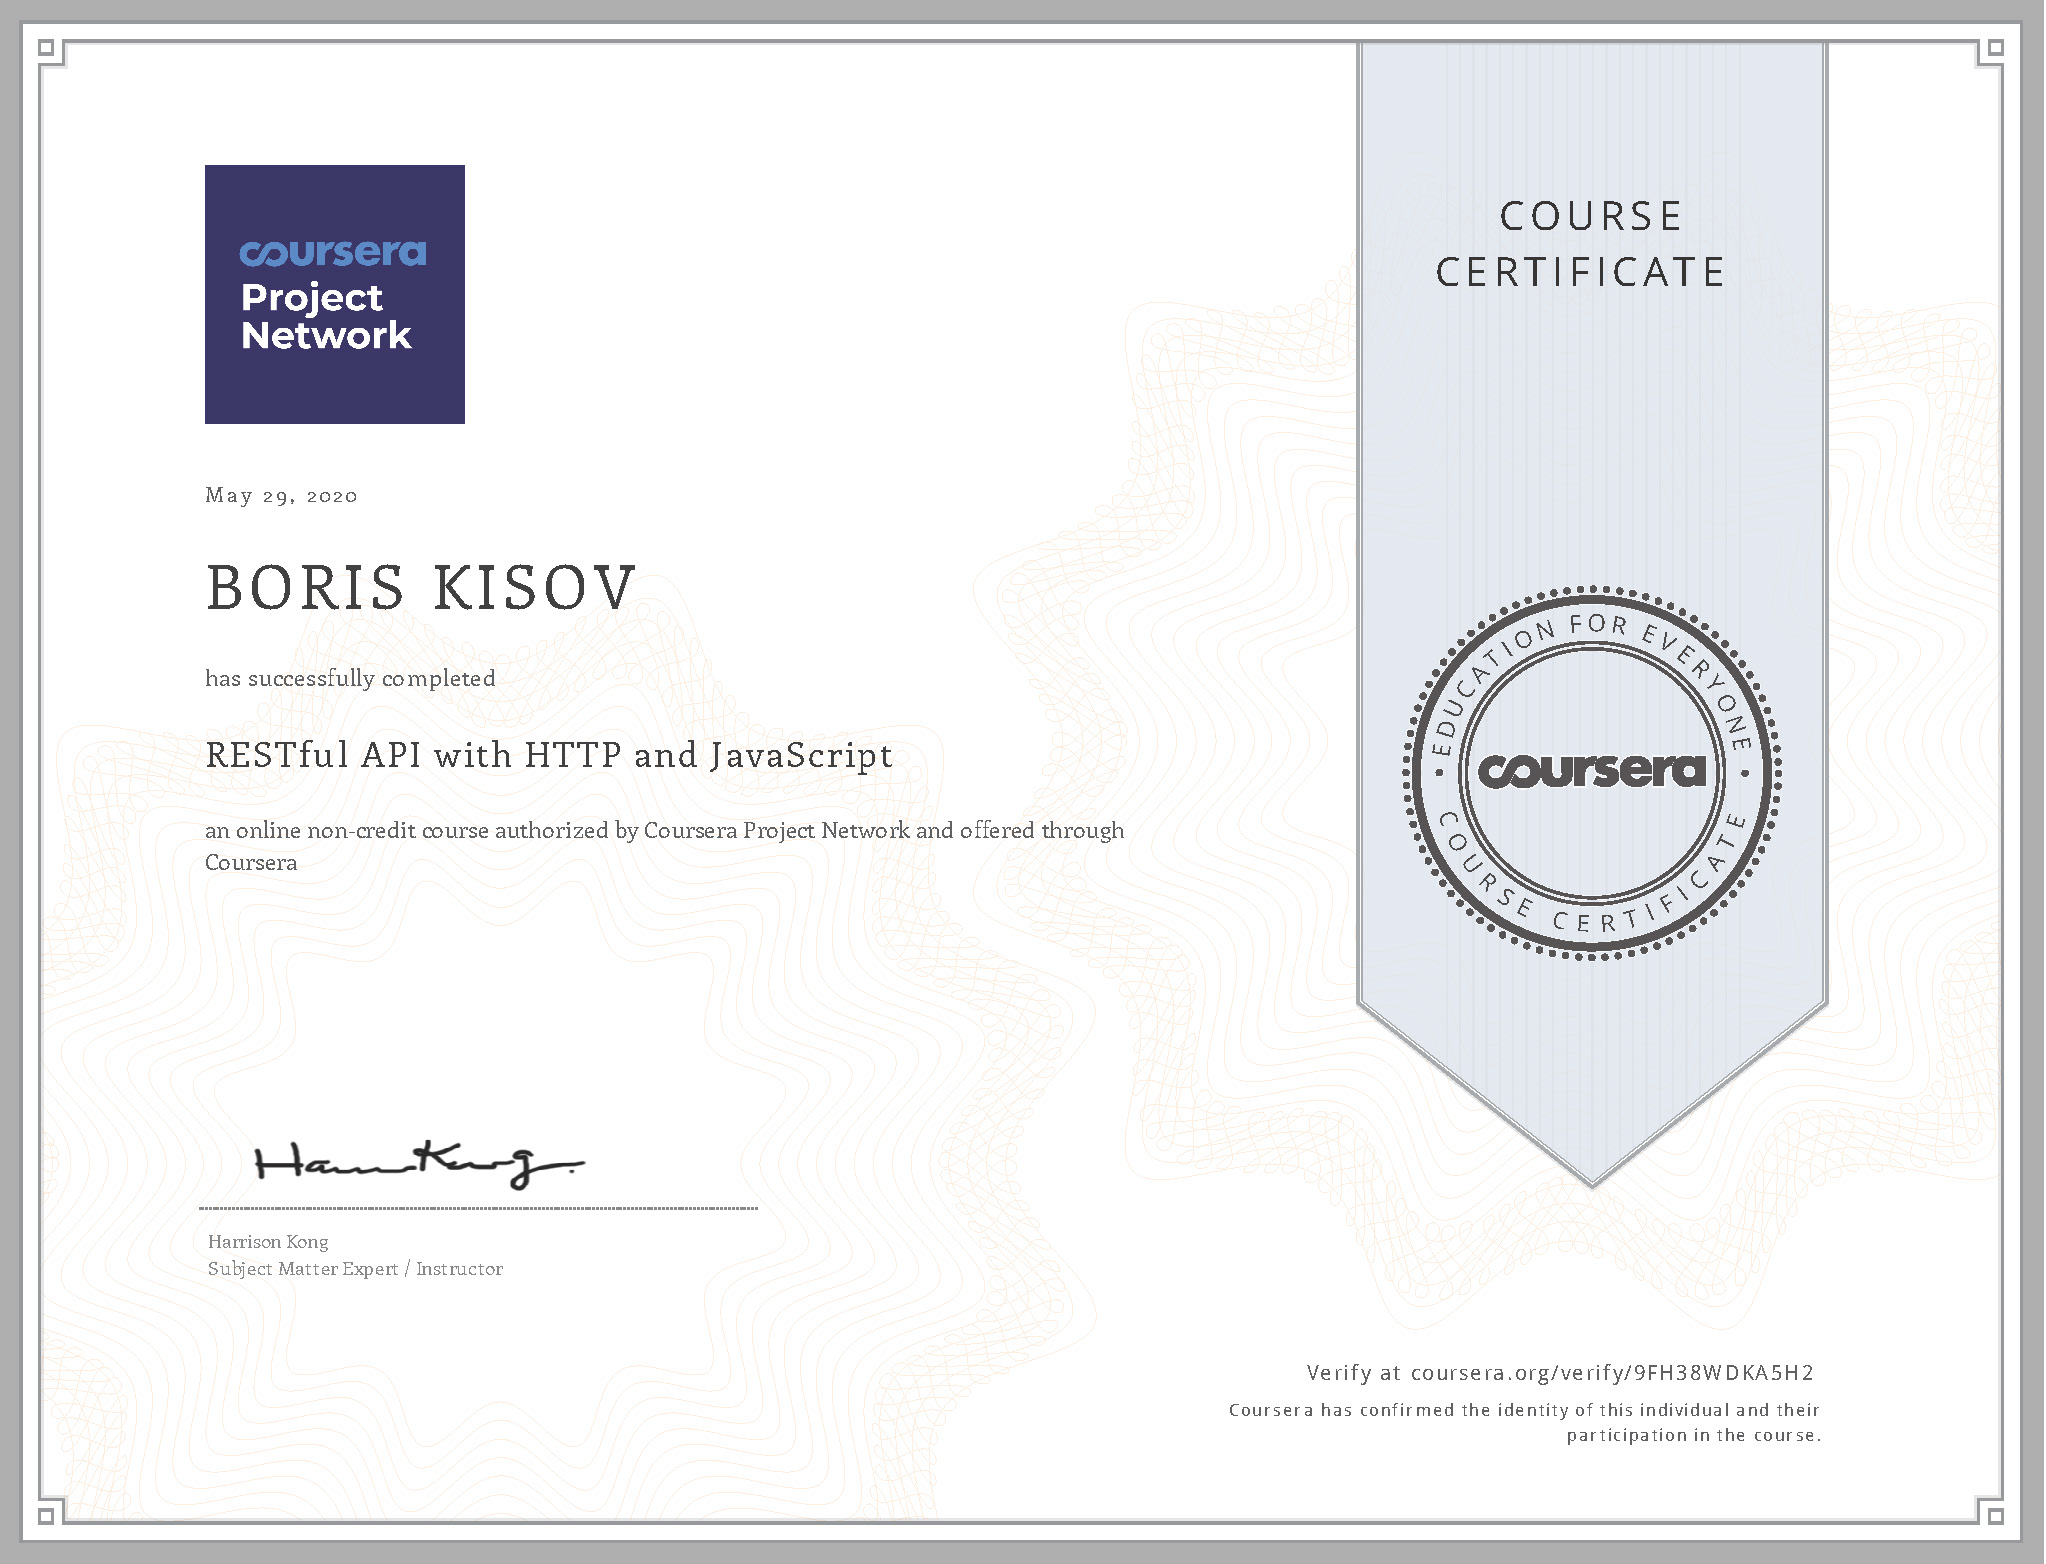 RESTful API with HTTP and JavaScript - Certificate